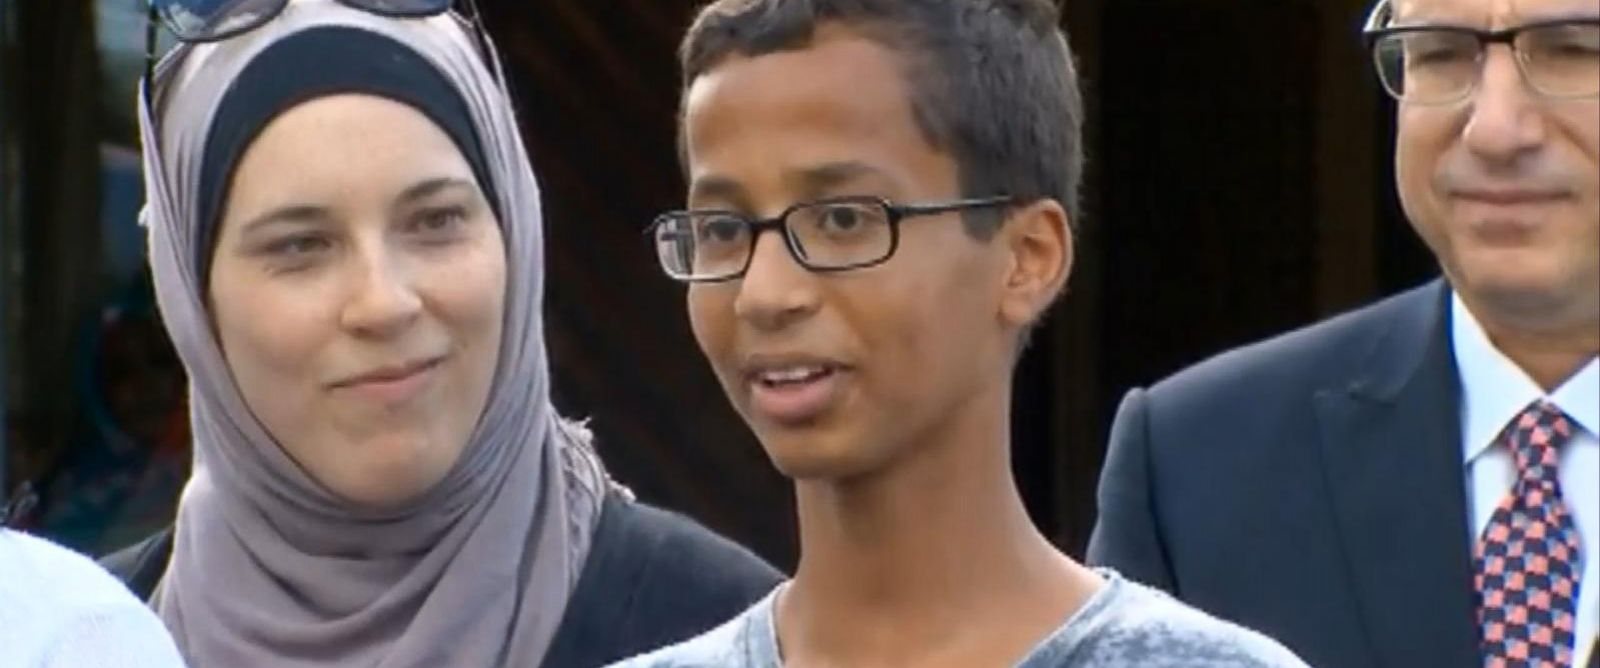 PHOTO: MacArthur High School said they will welcome Ahmed Mohamed back as a student following his arrest on Sept. 14, 2015.